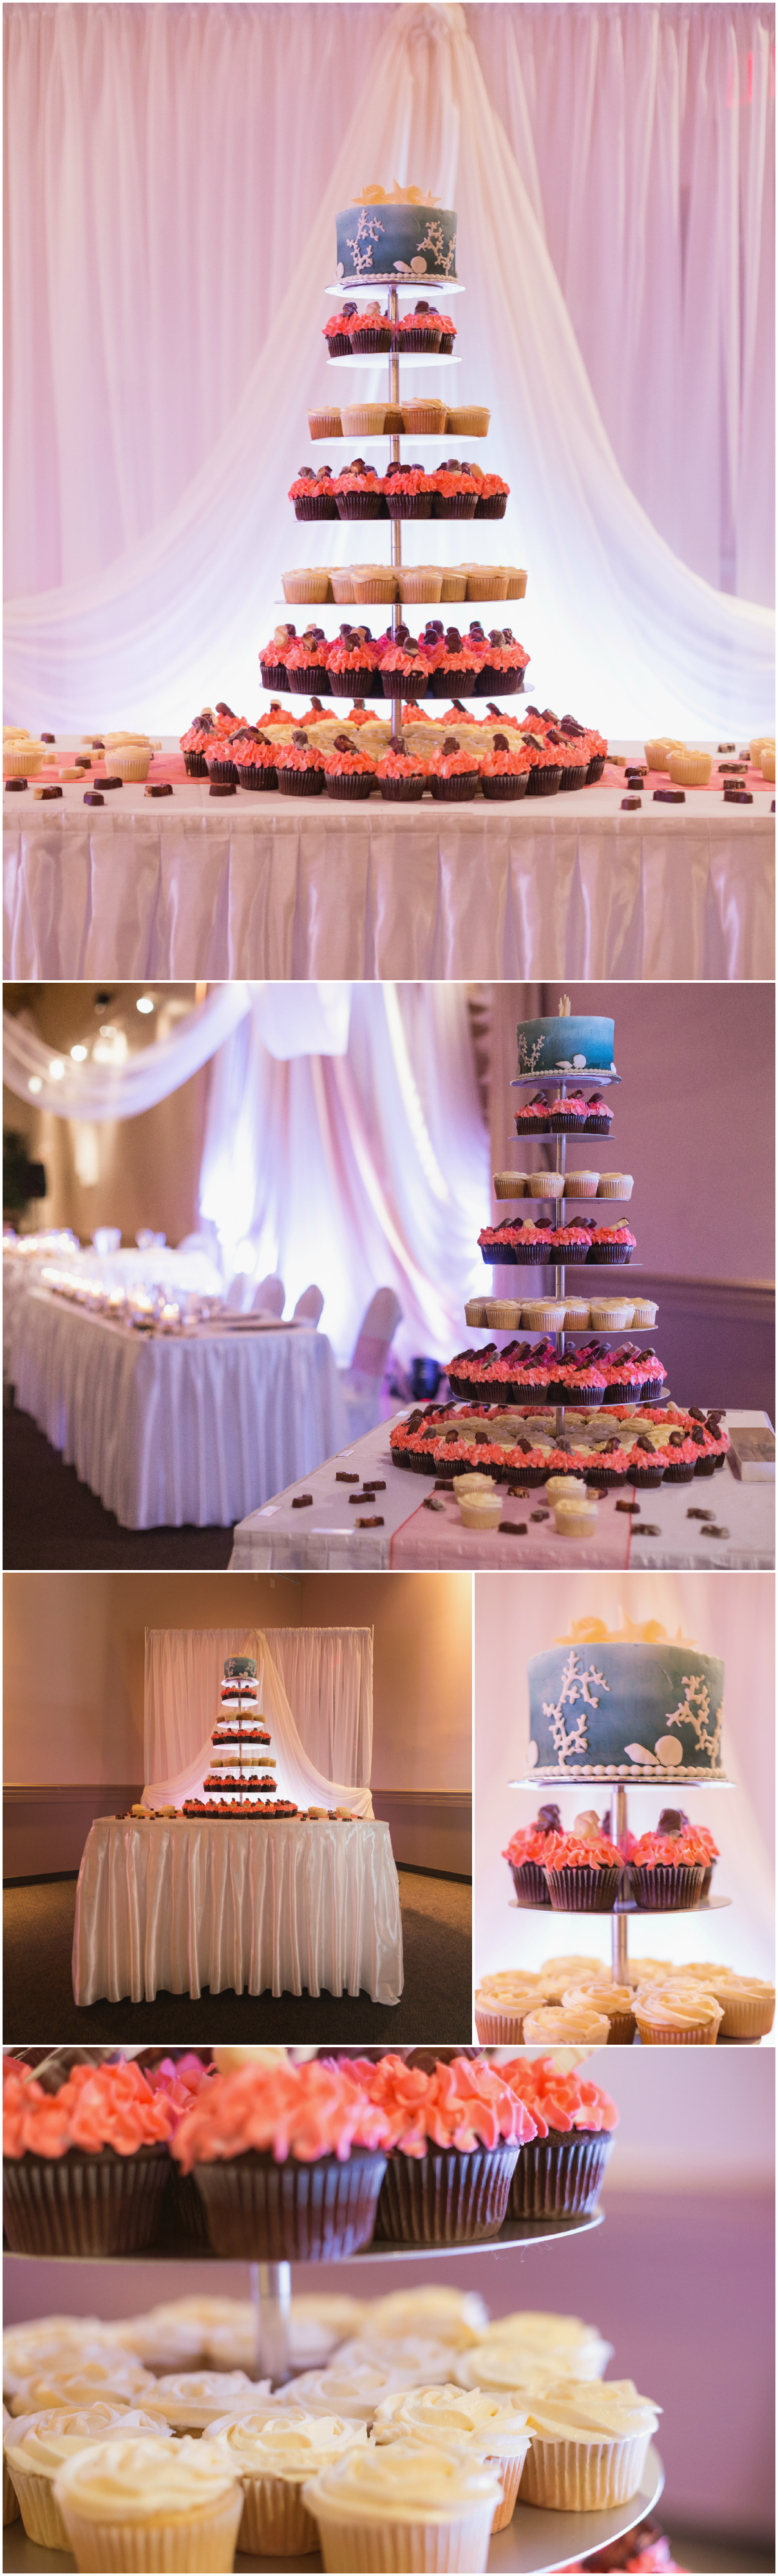 events_by_natalie_noel_southside-events-centre_9.png